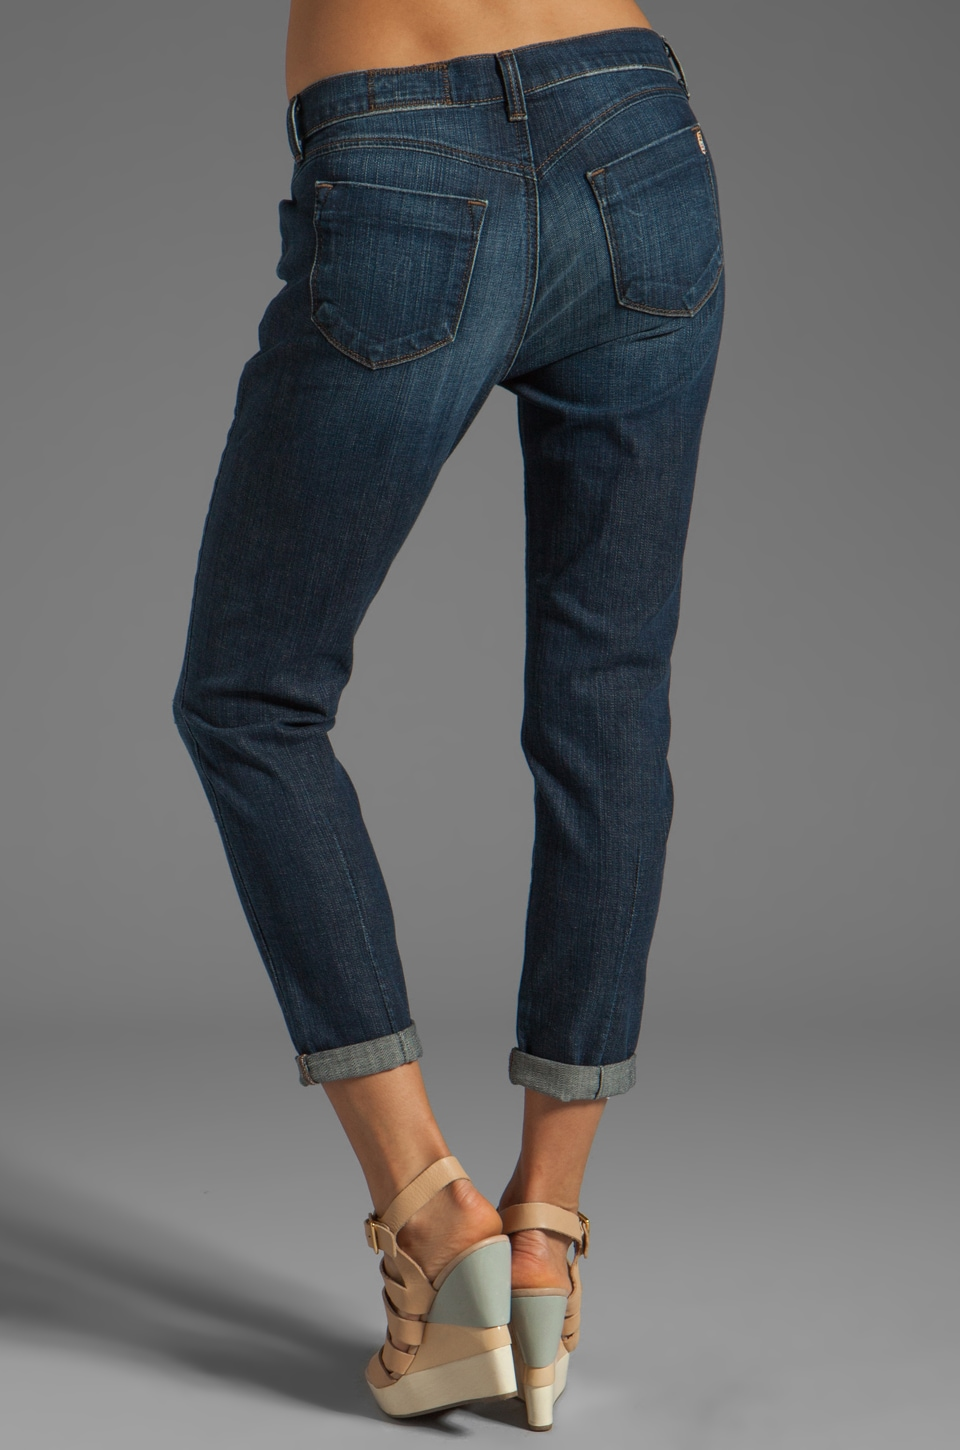 Siwy Kendra Slouchy Skinny in Love Hurts